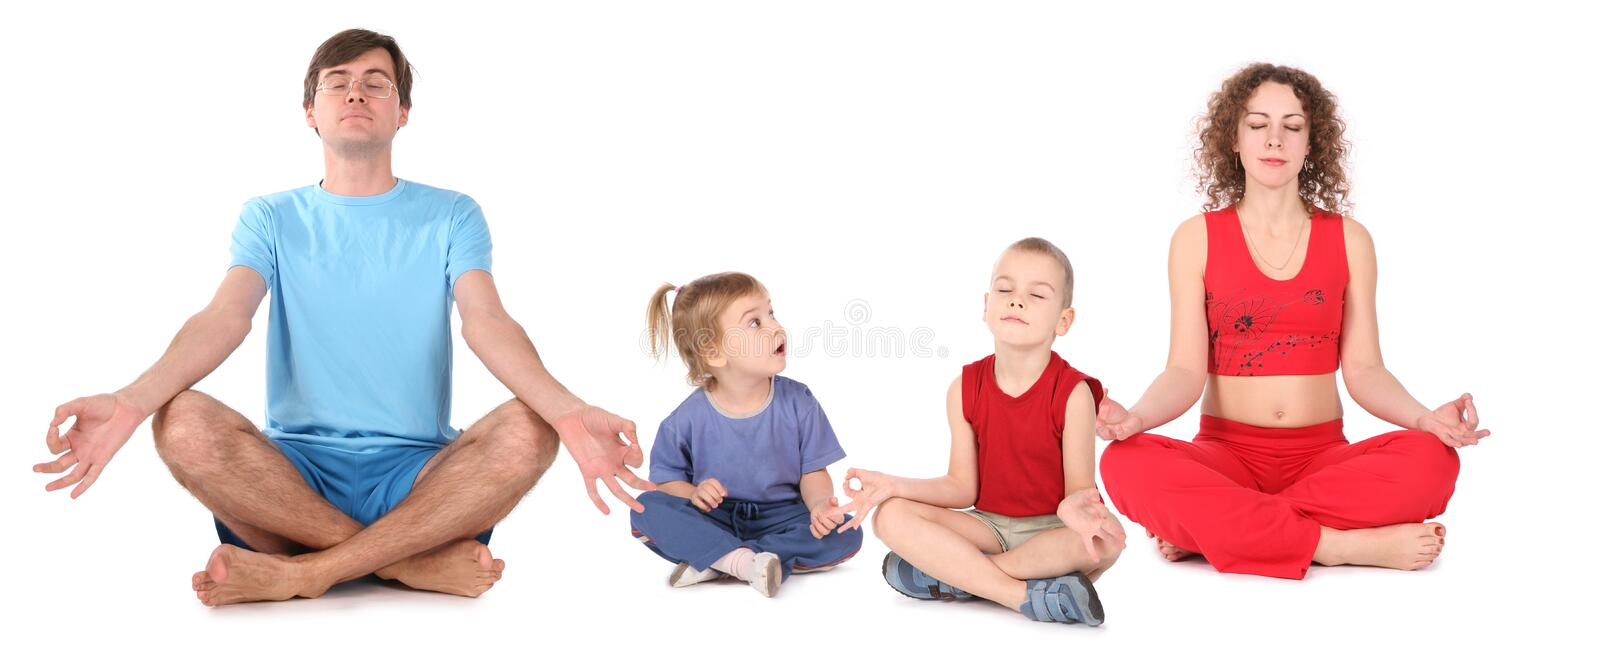 Yoga family of four royalty free stock photography